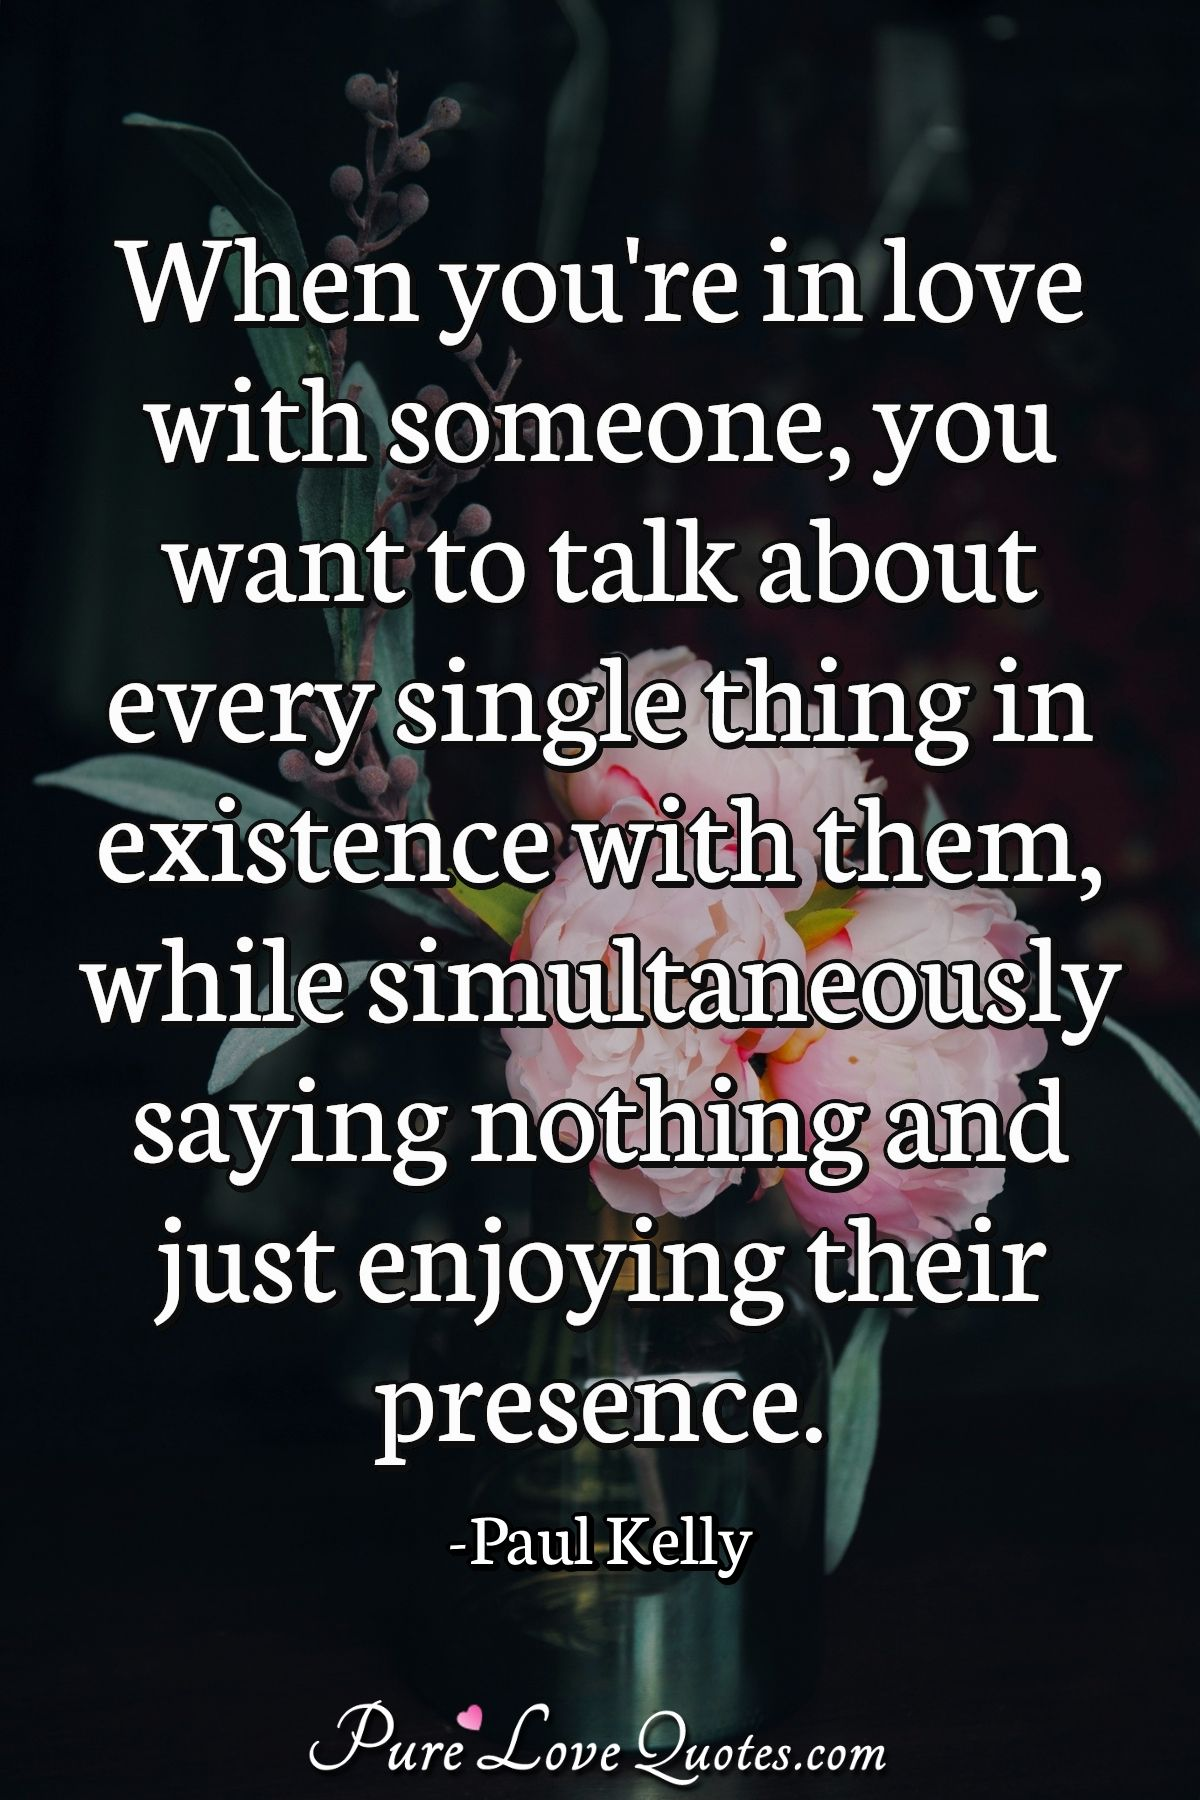 When youre in love with someone, you want to talk about